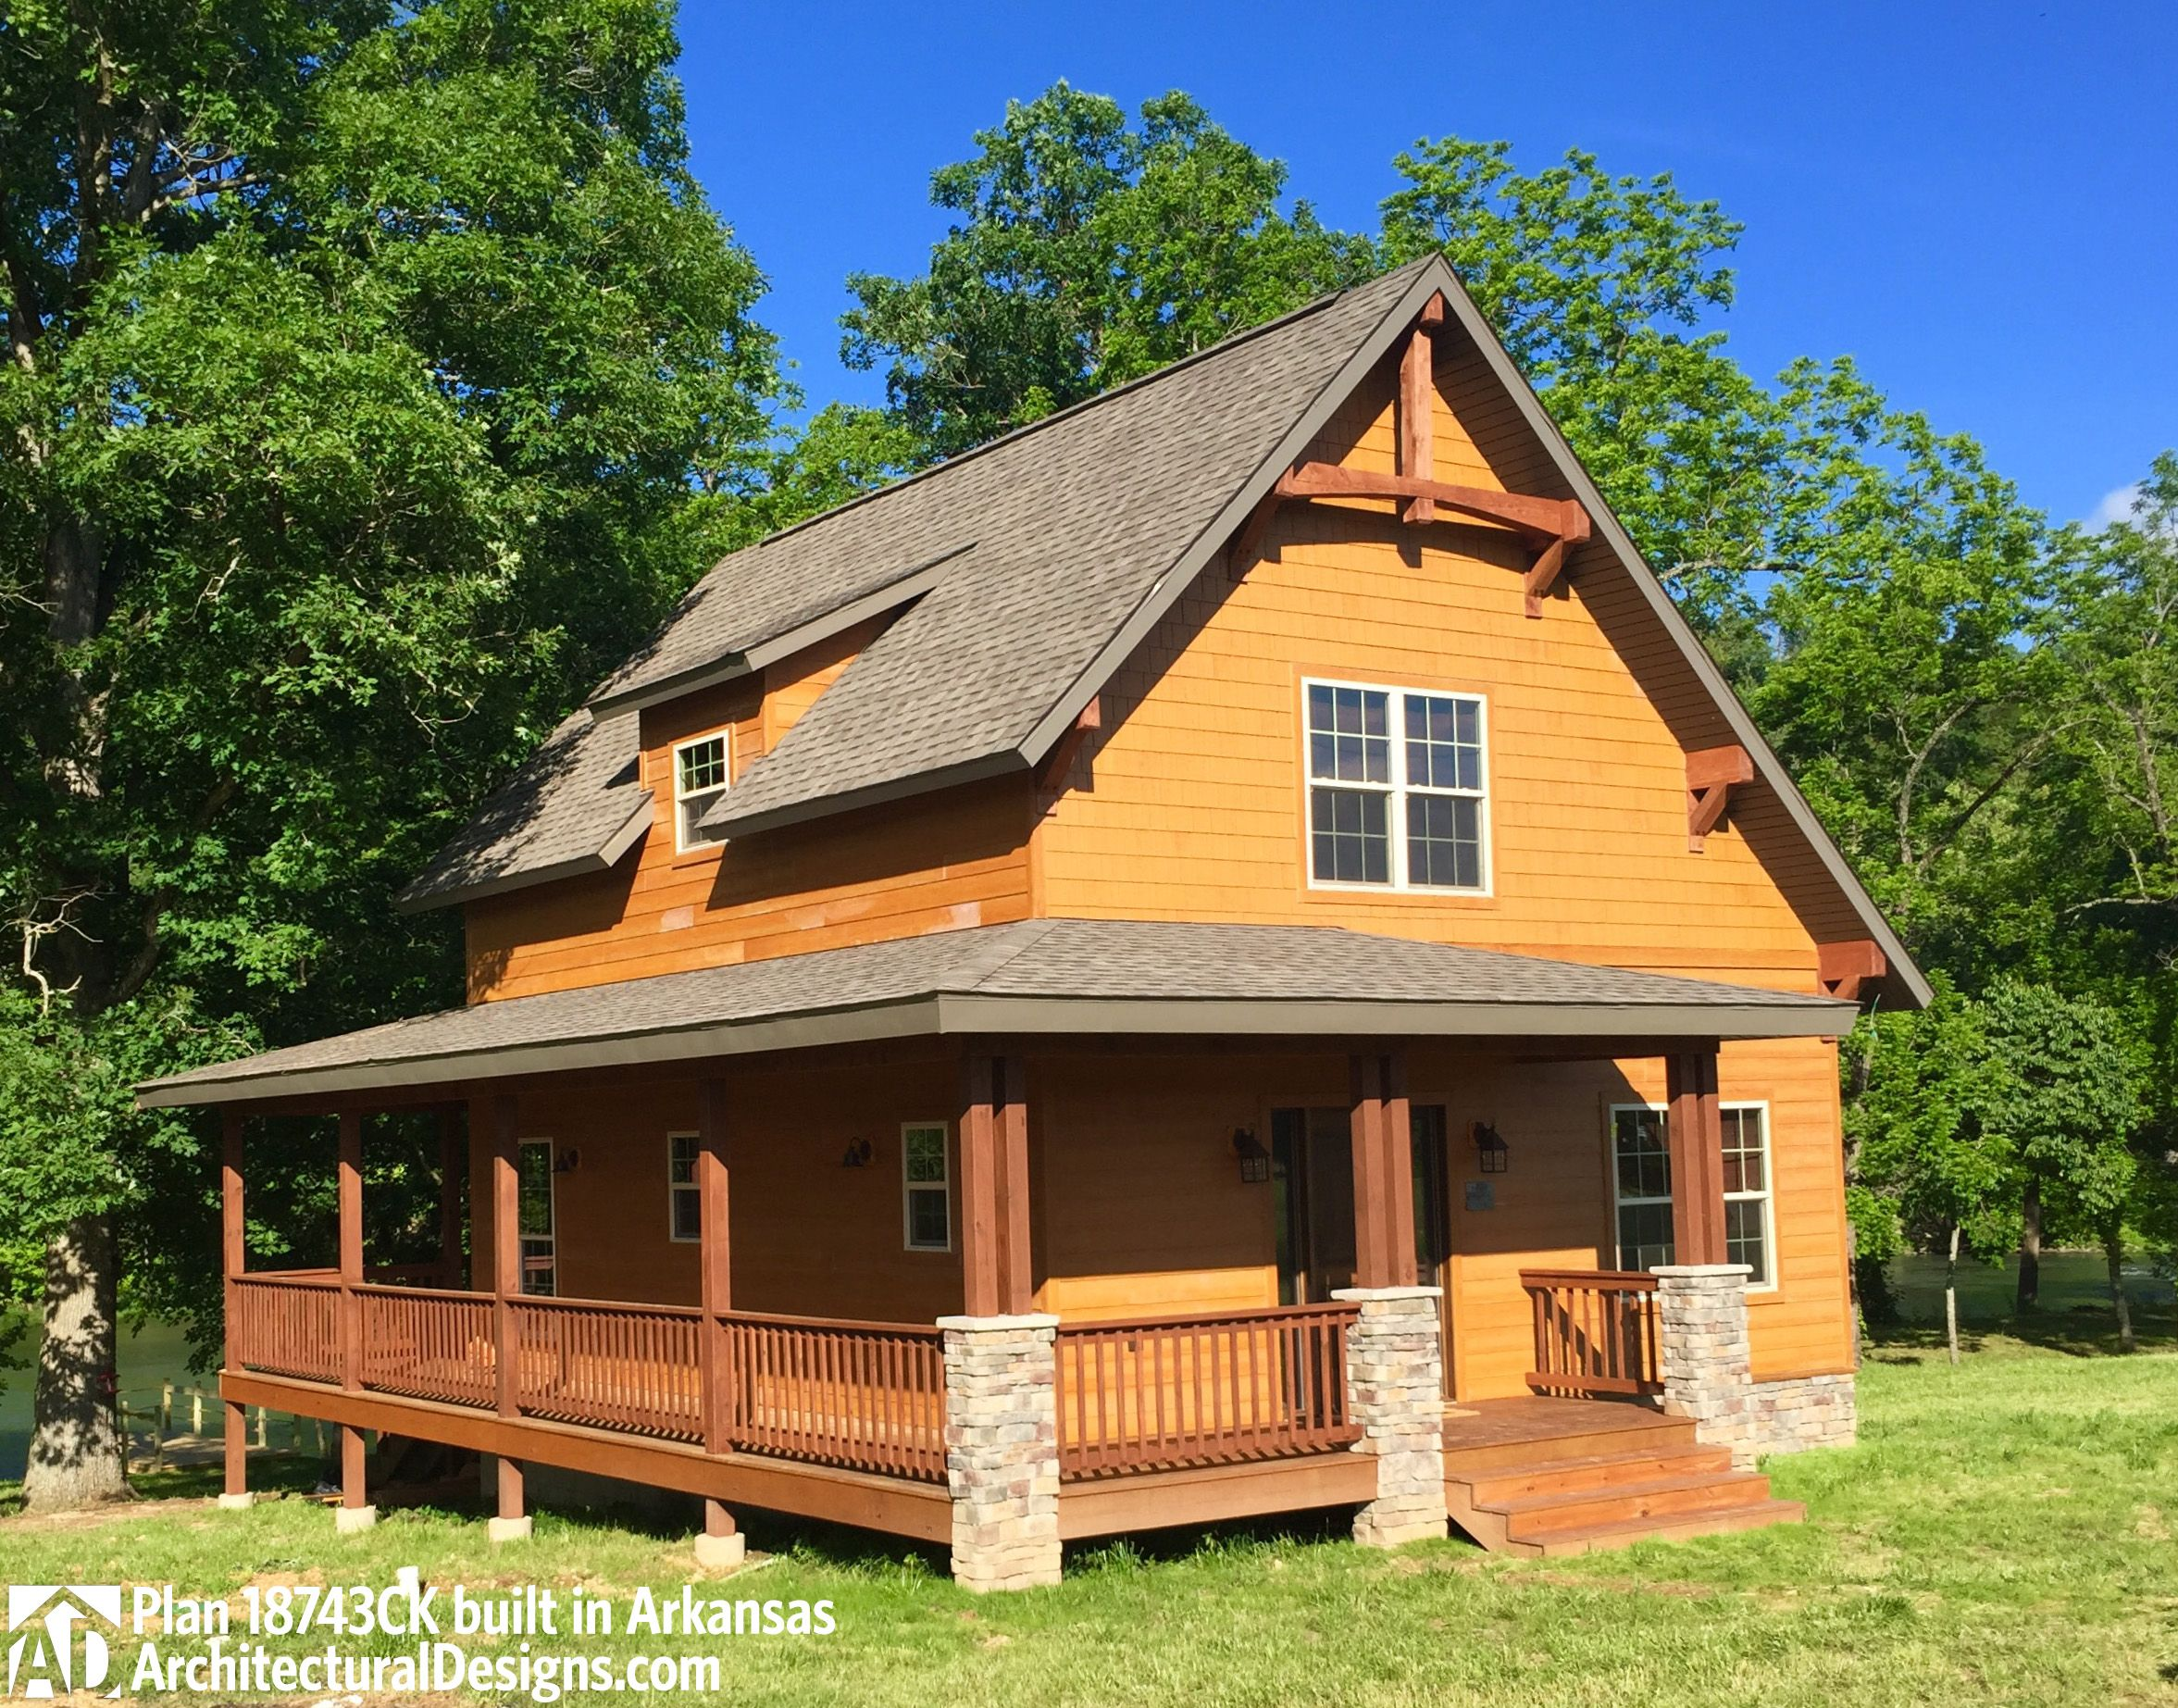 plan 18743ck classic small rustic home plan mountain vacations